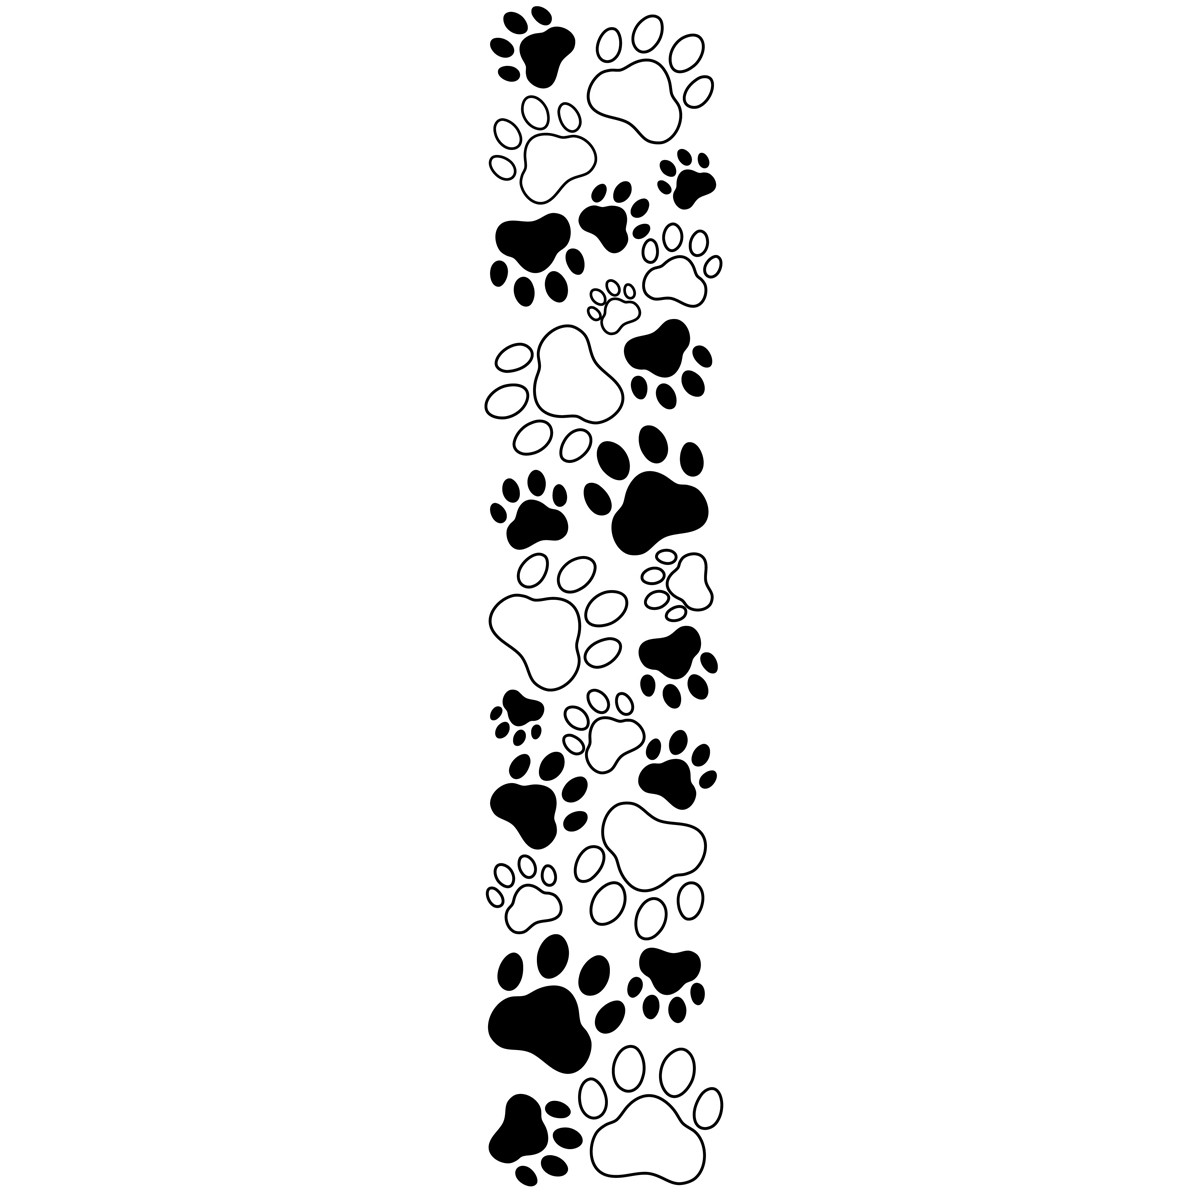 Paw print clipart free border picture library library Dog Bone Border Clip Art | Clipart Panda - Free Clipart Images picture library library